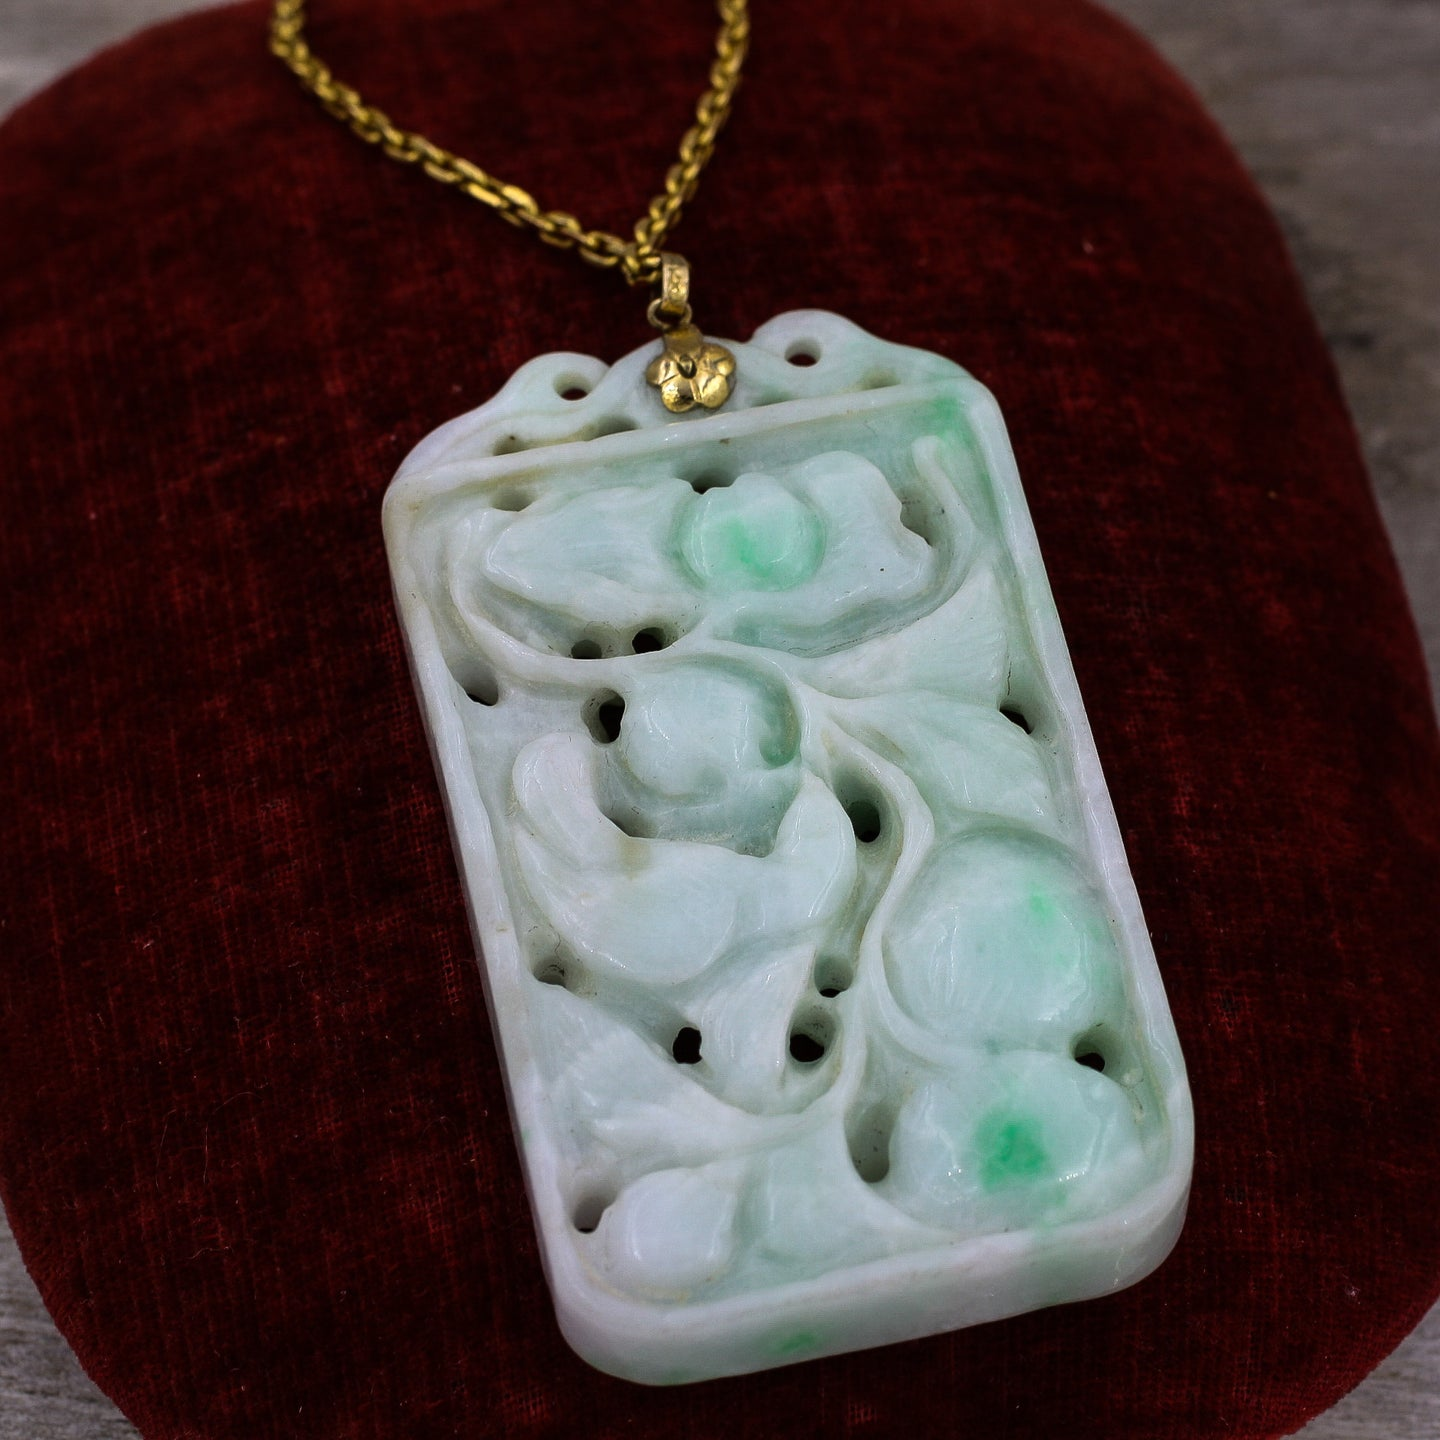 jade with carved pendant apple xupes antique ebay guarantee chinese calf bat itm